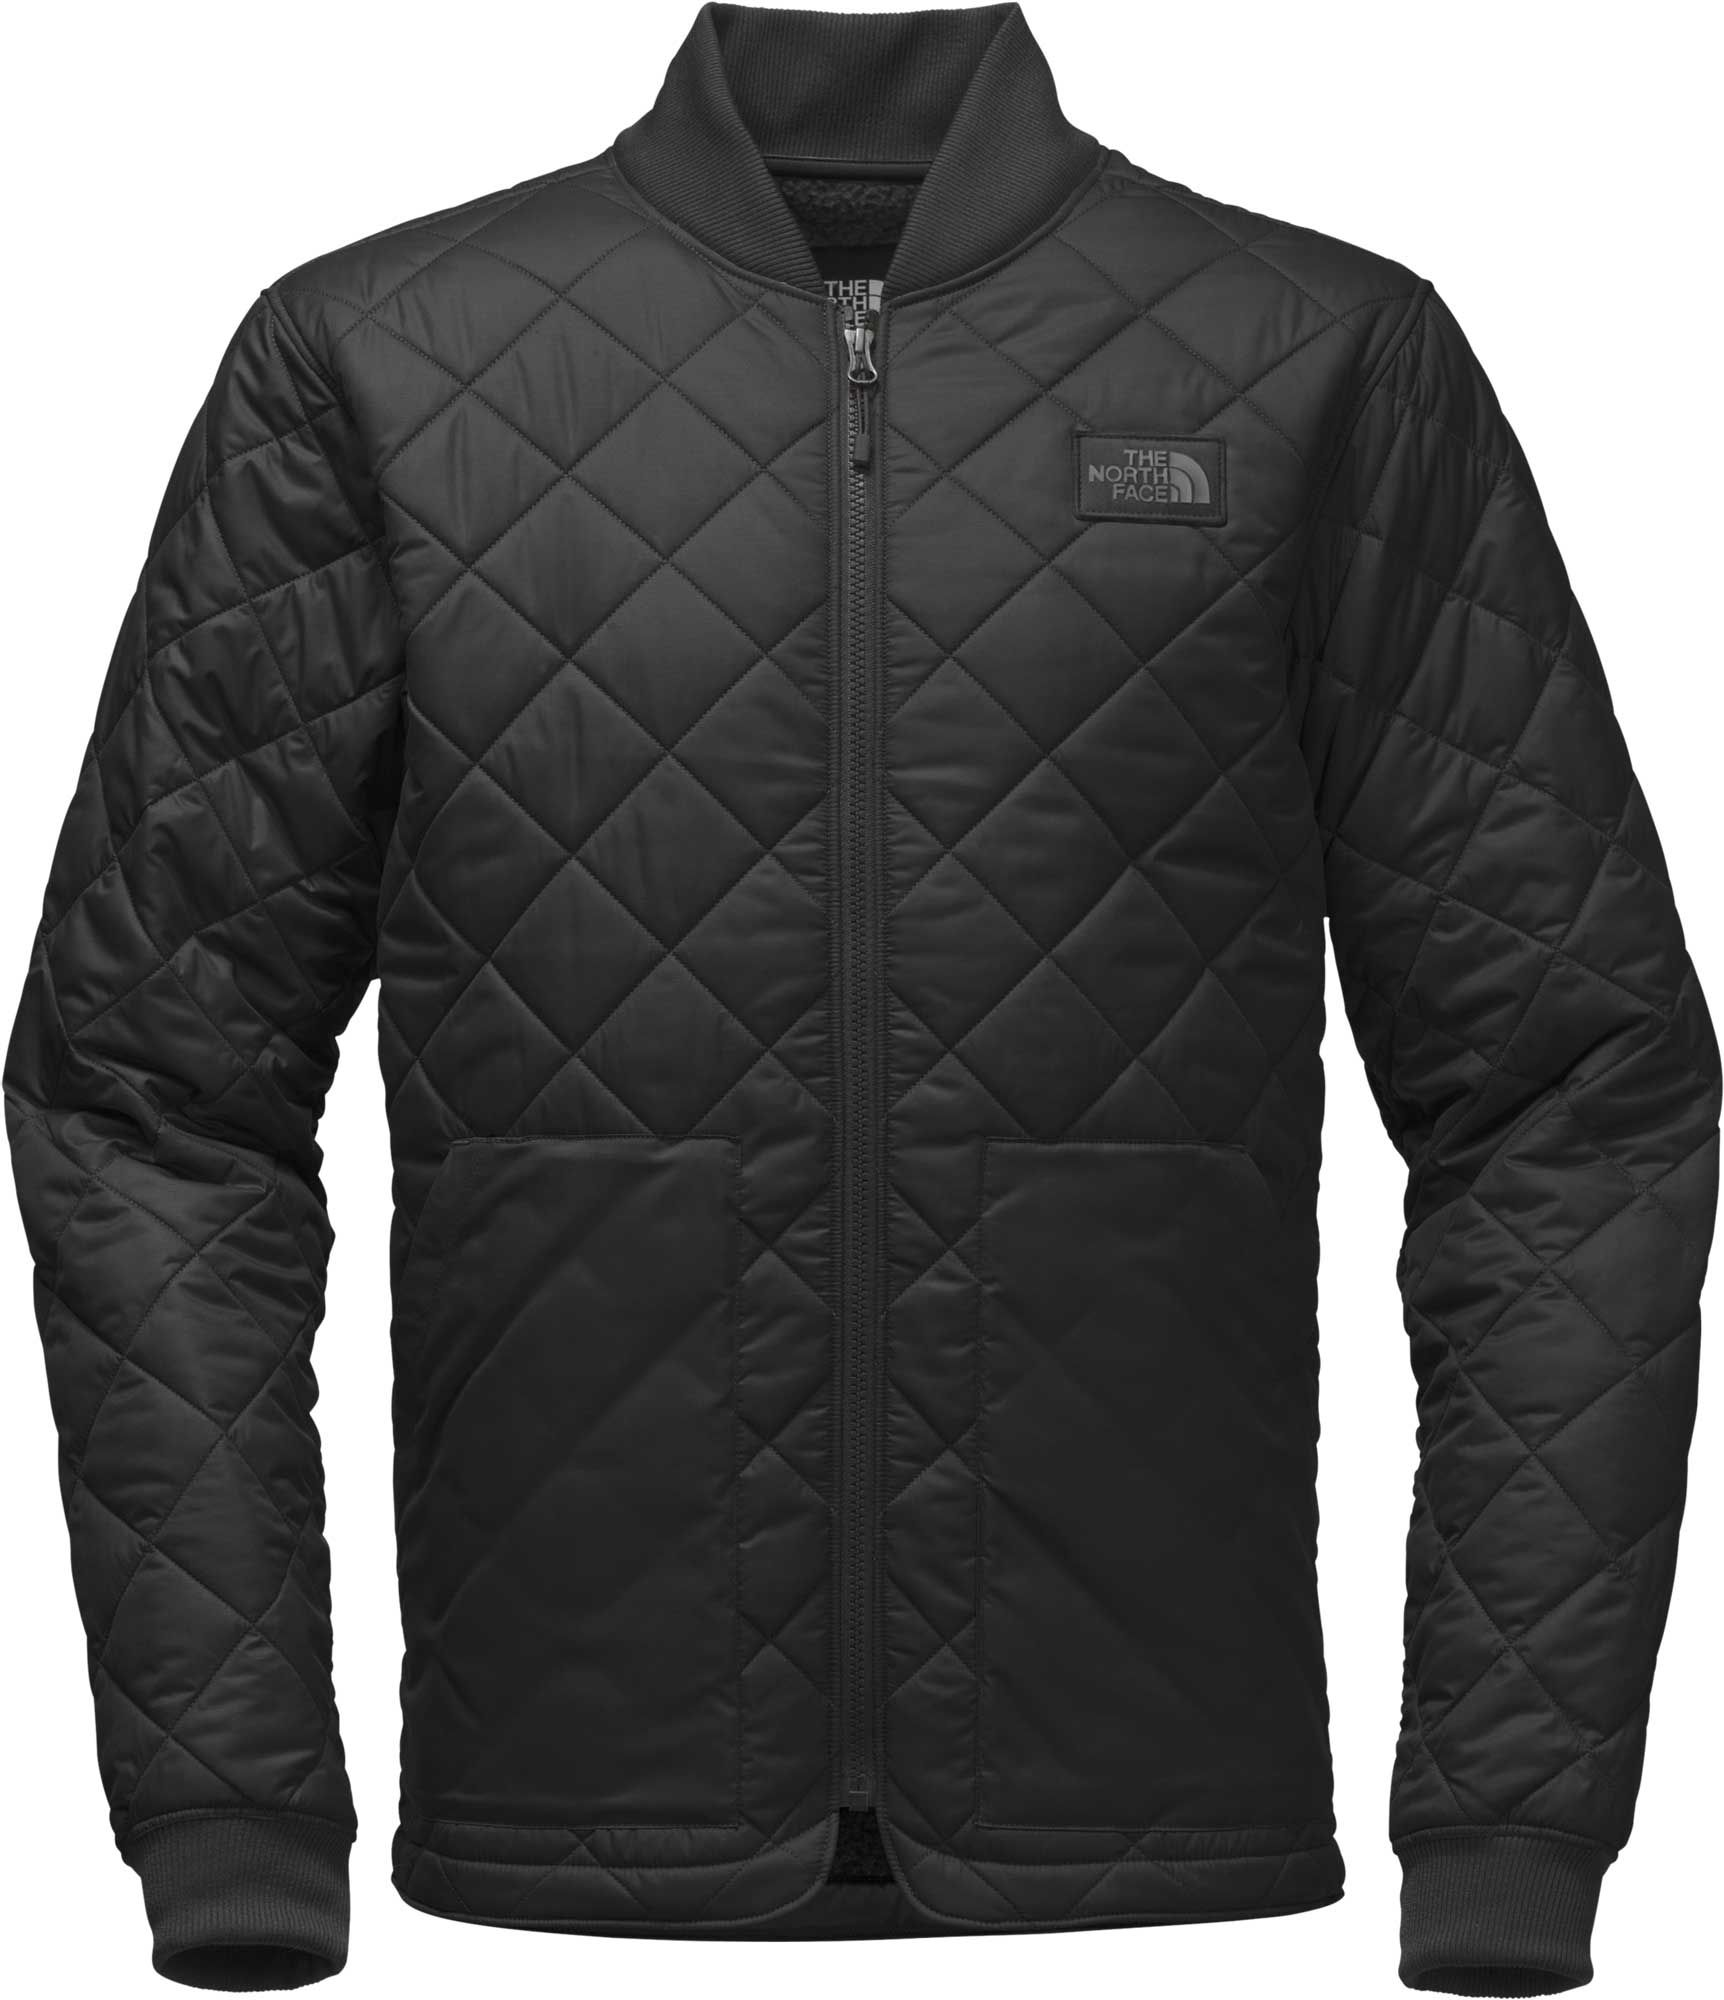 ... spain the north face mens cuchillo insulated jacket fb356 01ef1 cbfc573f8